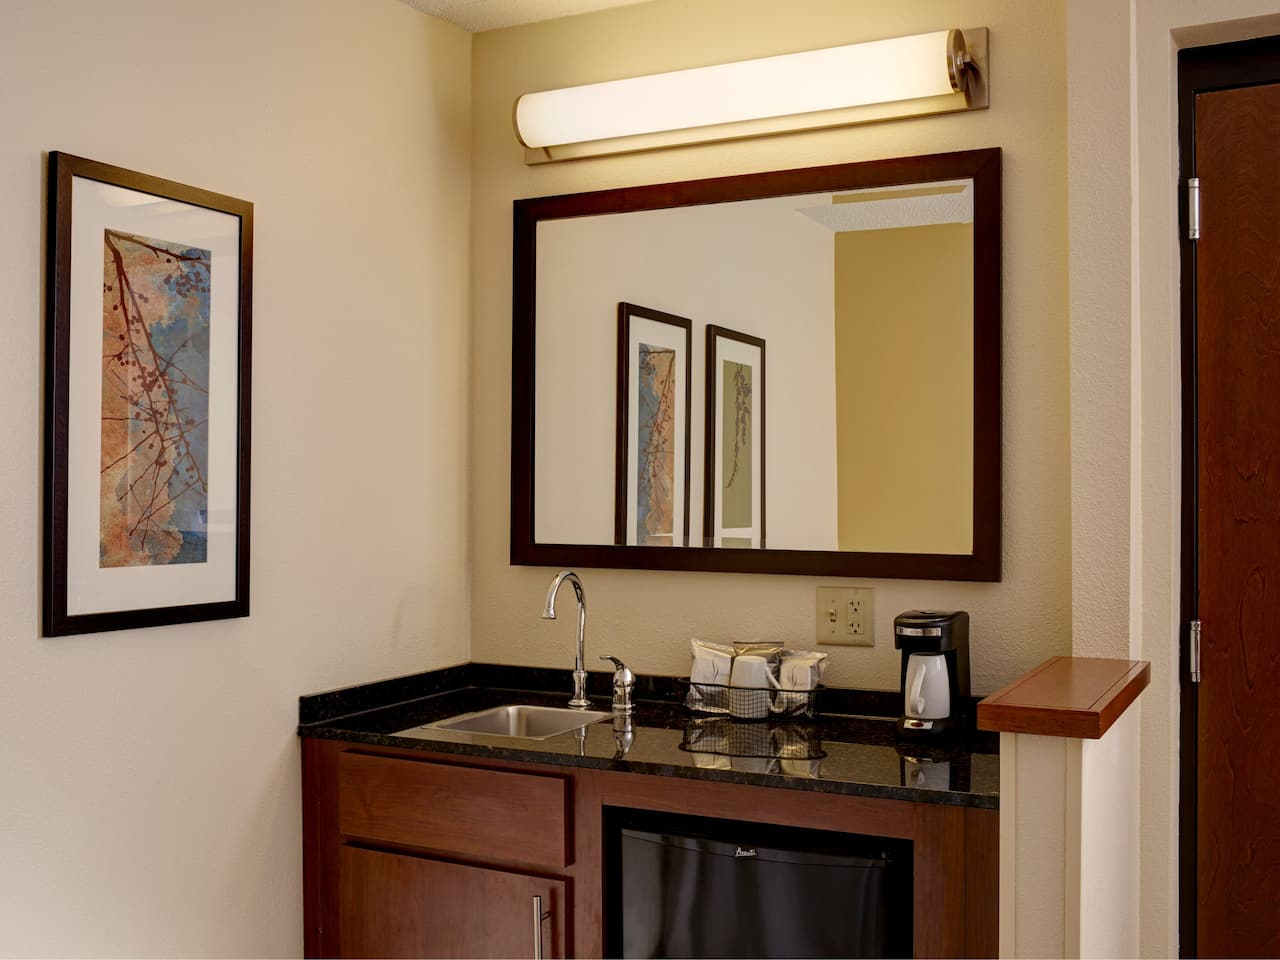 Hyatt Place Kansas City Airport Conversion Wet Bar